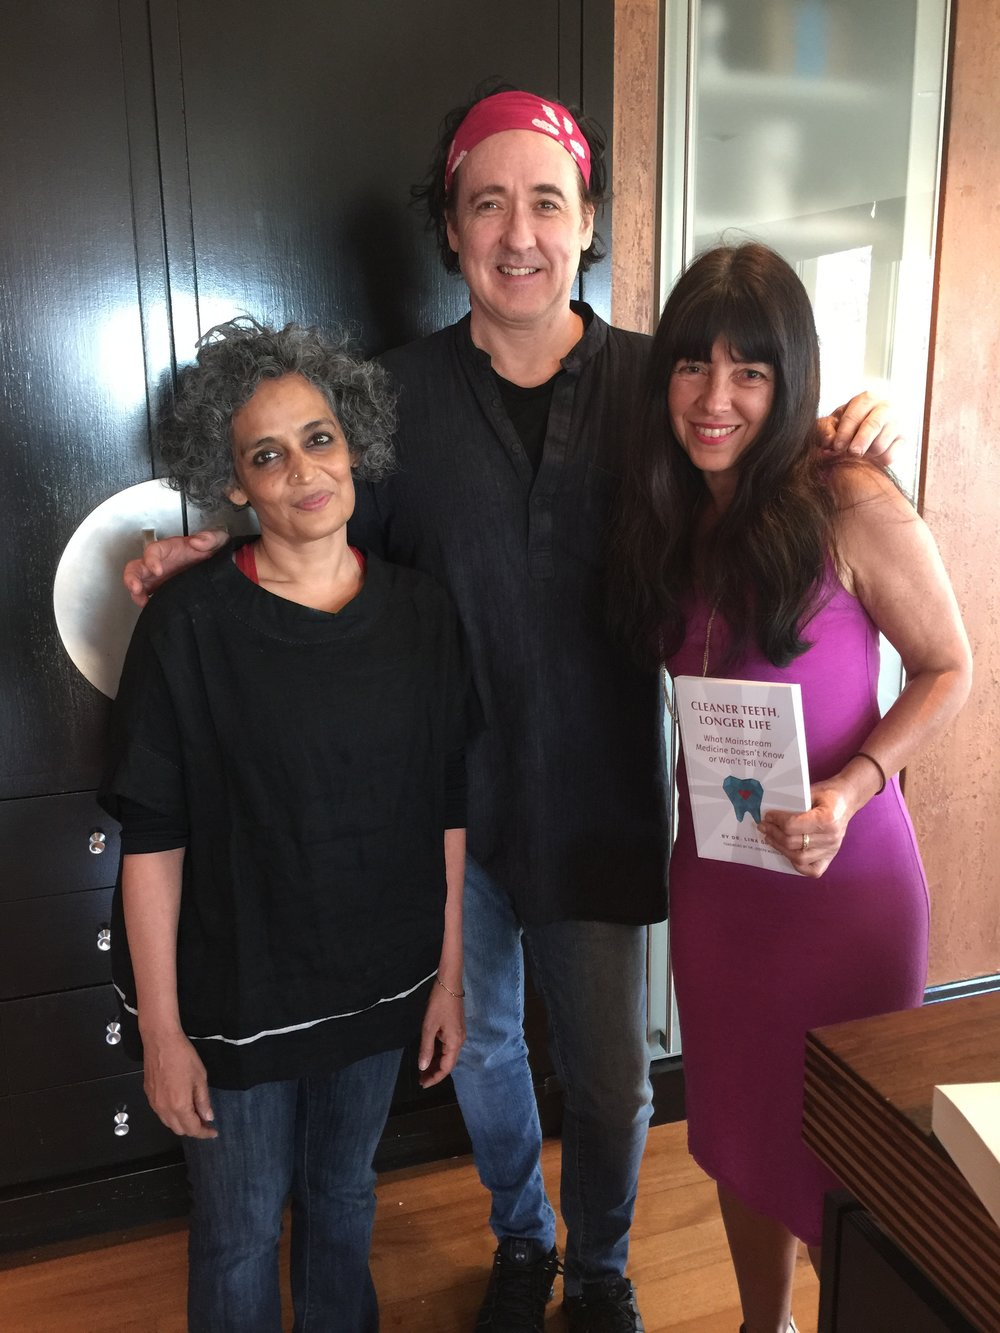 Dr Garcia with patient John Cusack (actor, producer and  screenwriter) and world renowned author Arundhati Roy who are co-authors of the recent book Things That Can and Cannot be Said